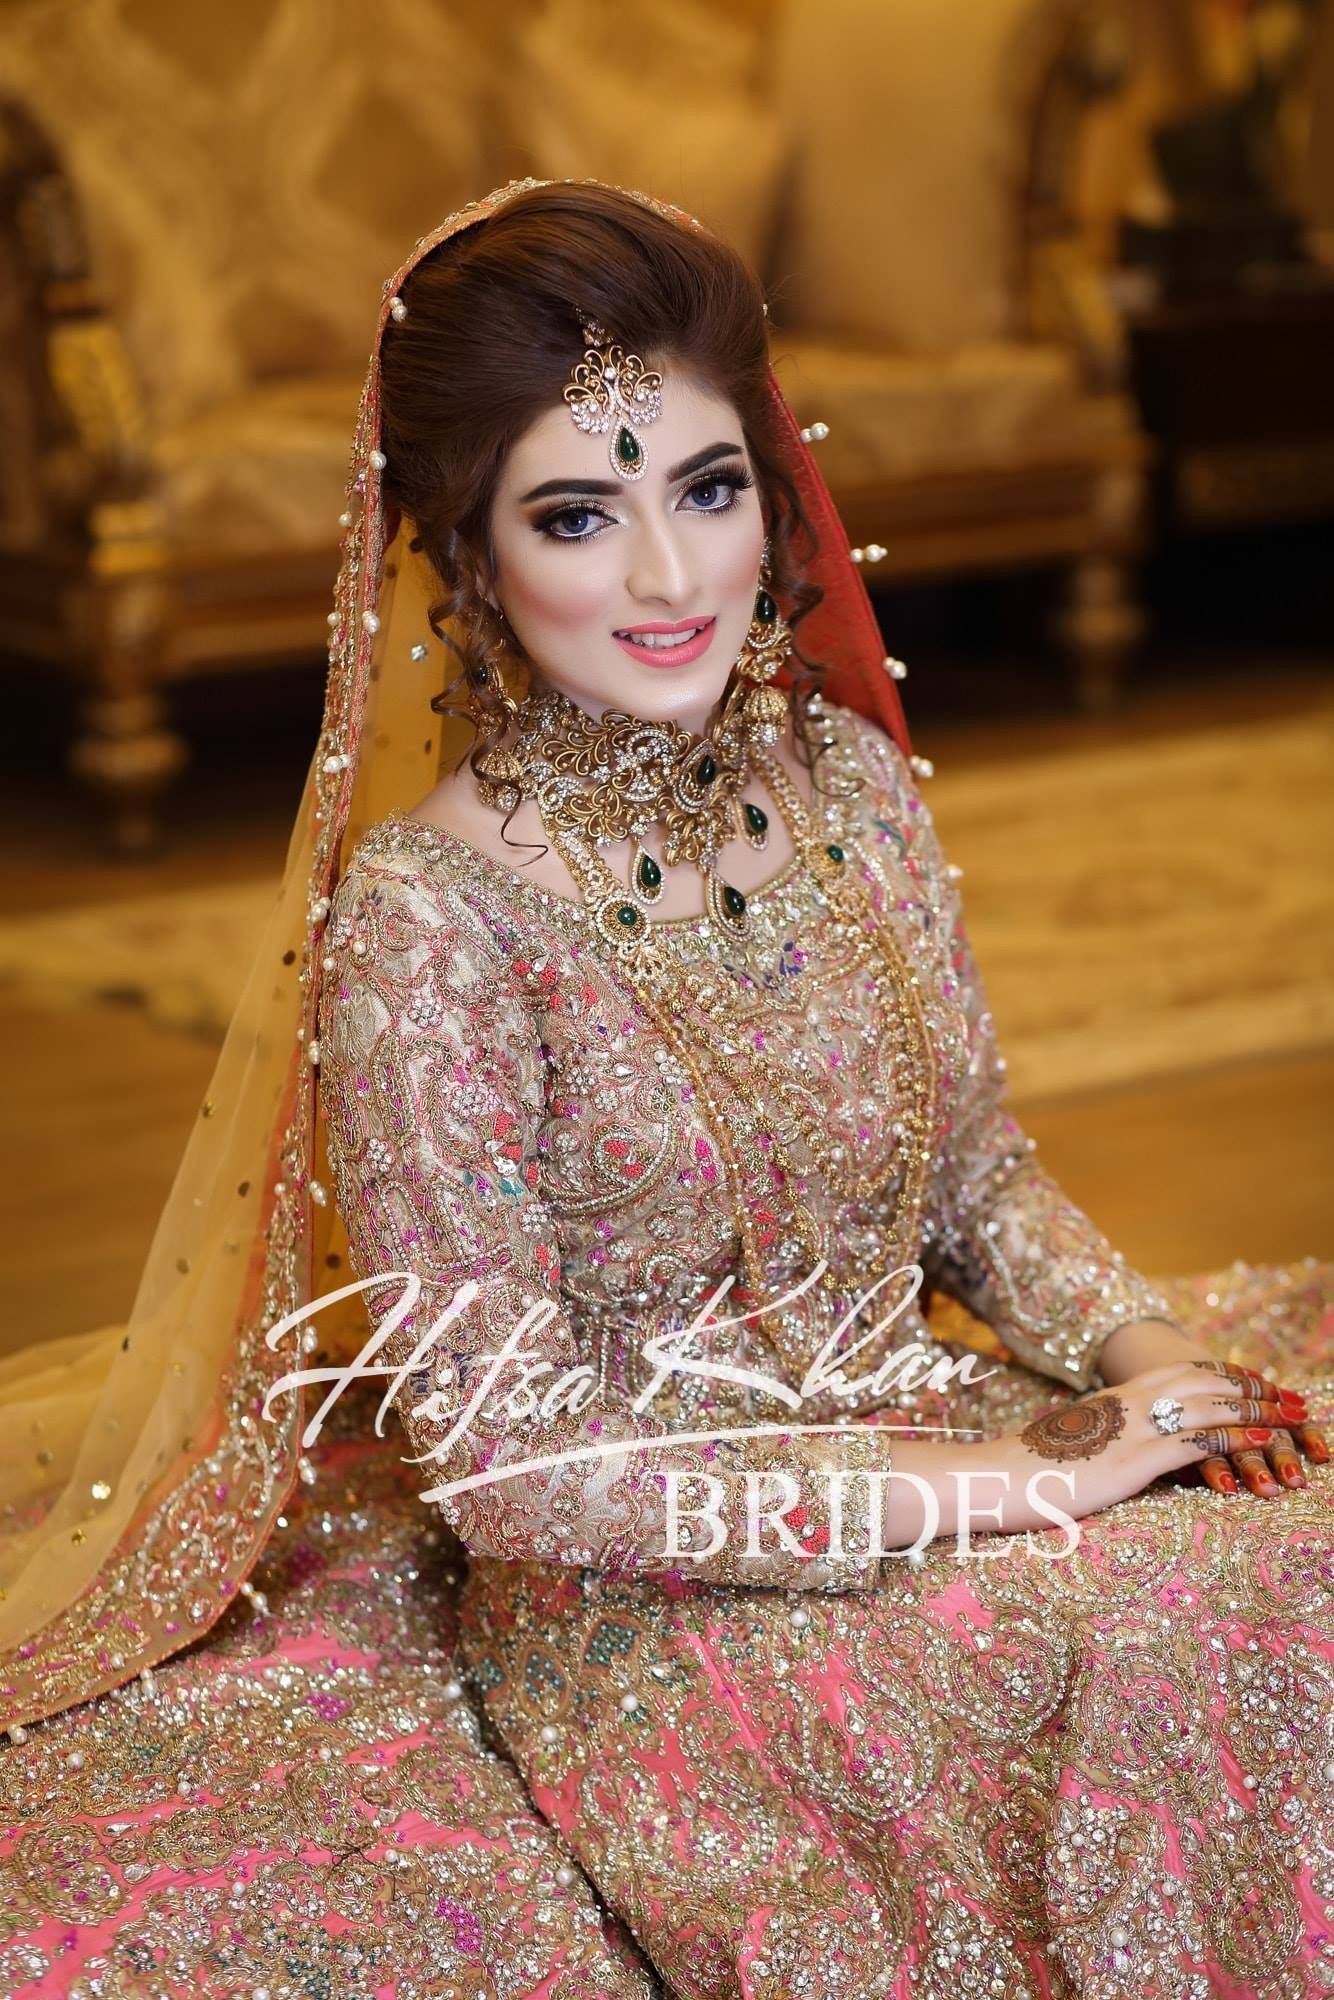 fc7bc5da0d4 Pin by Syedaghania Fatima on Pakistani Valima bride dress inspo ...